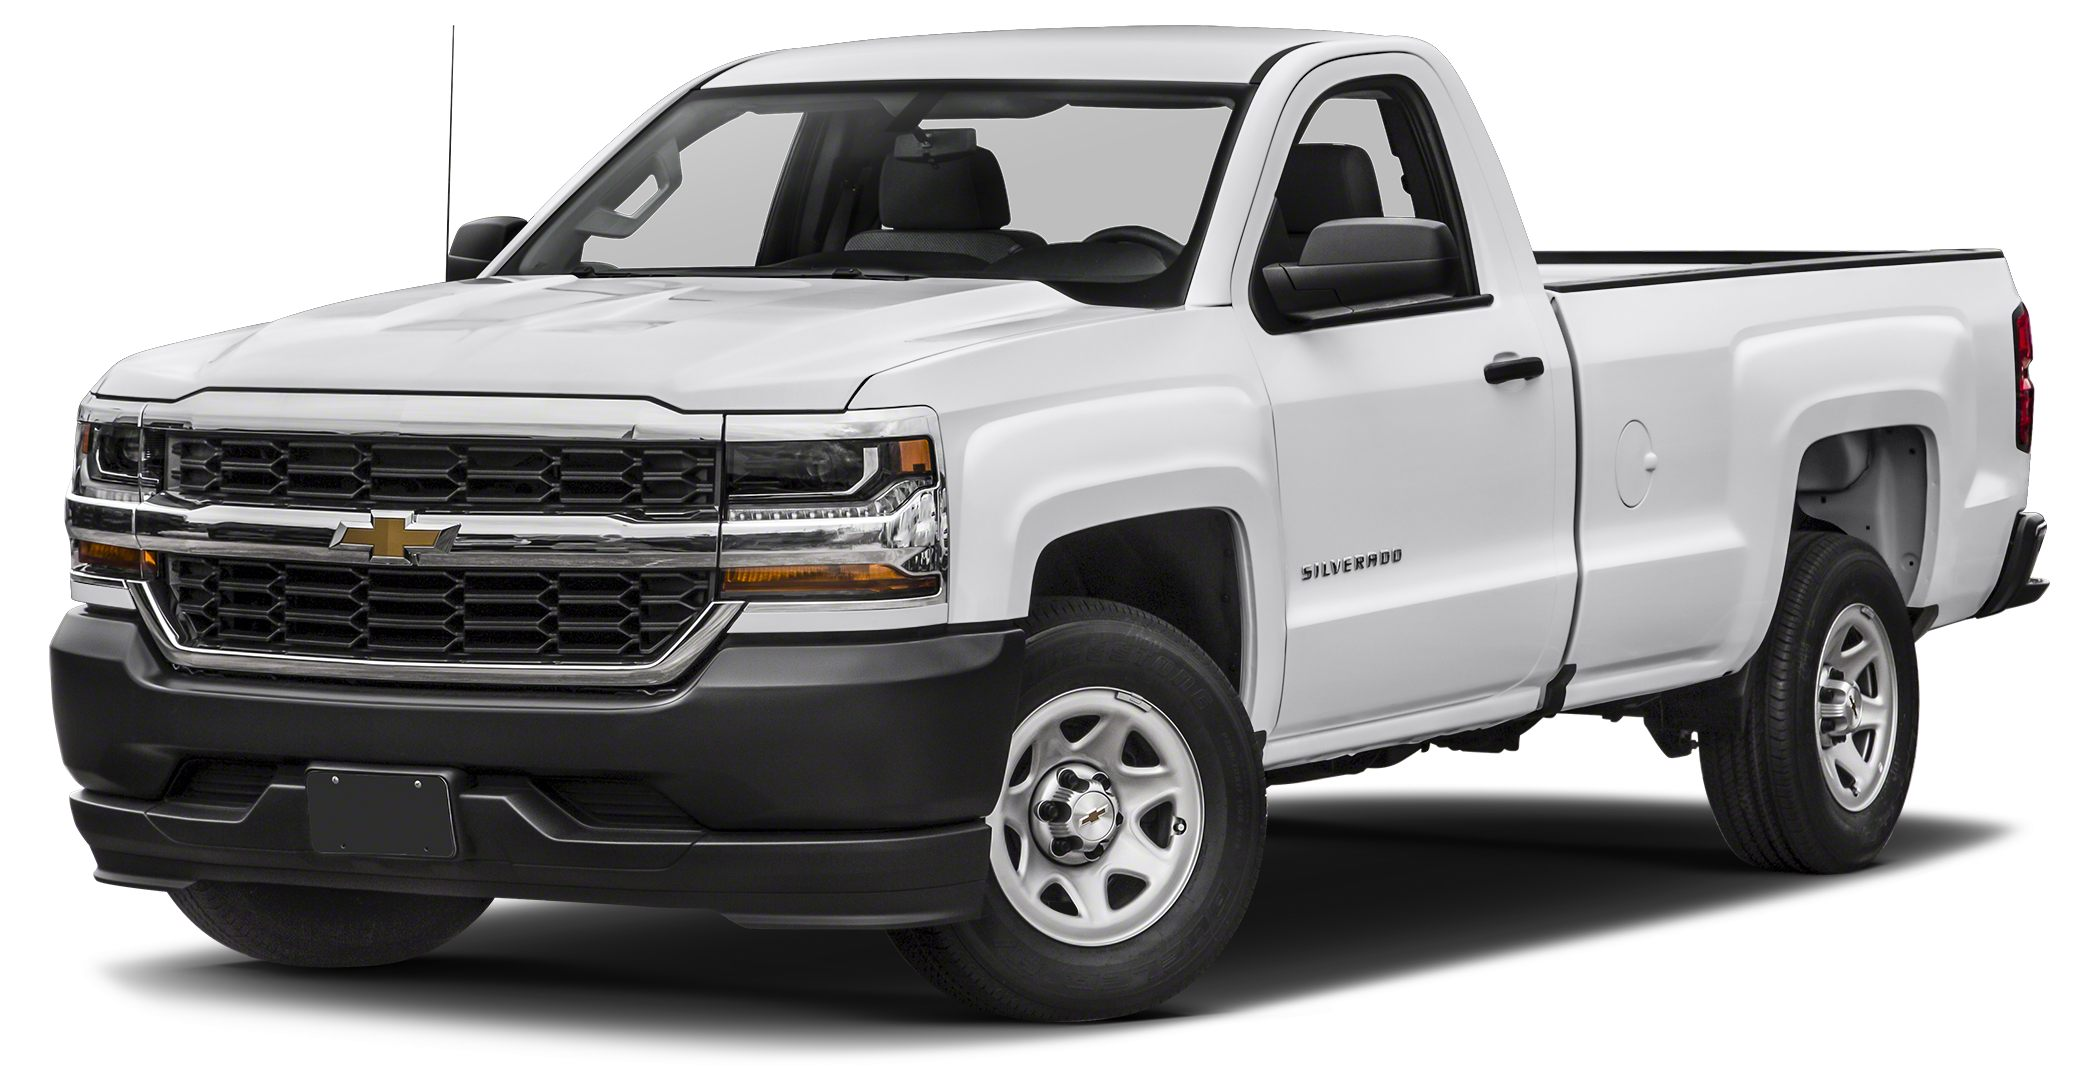 2016 Chevrolet Silverado 1500  Miles 0Color Summit White Stock 165691 VIN 1GCNKNEC8GZ168765